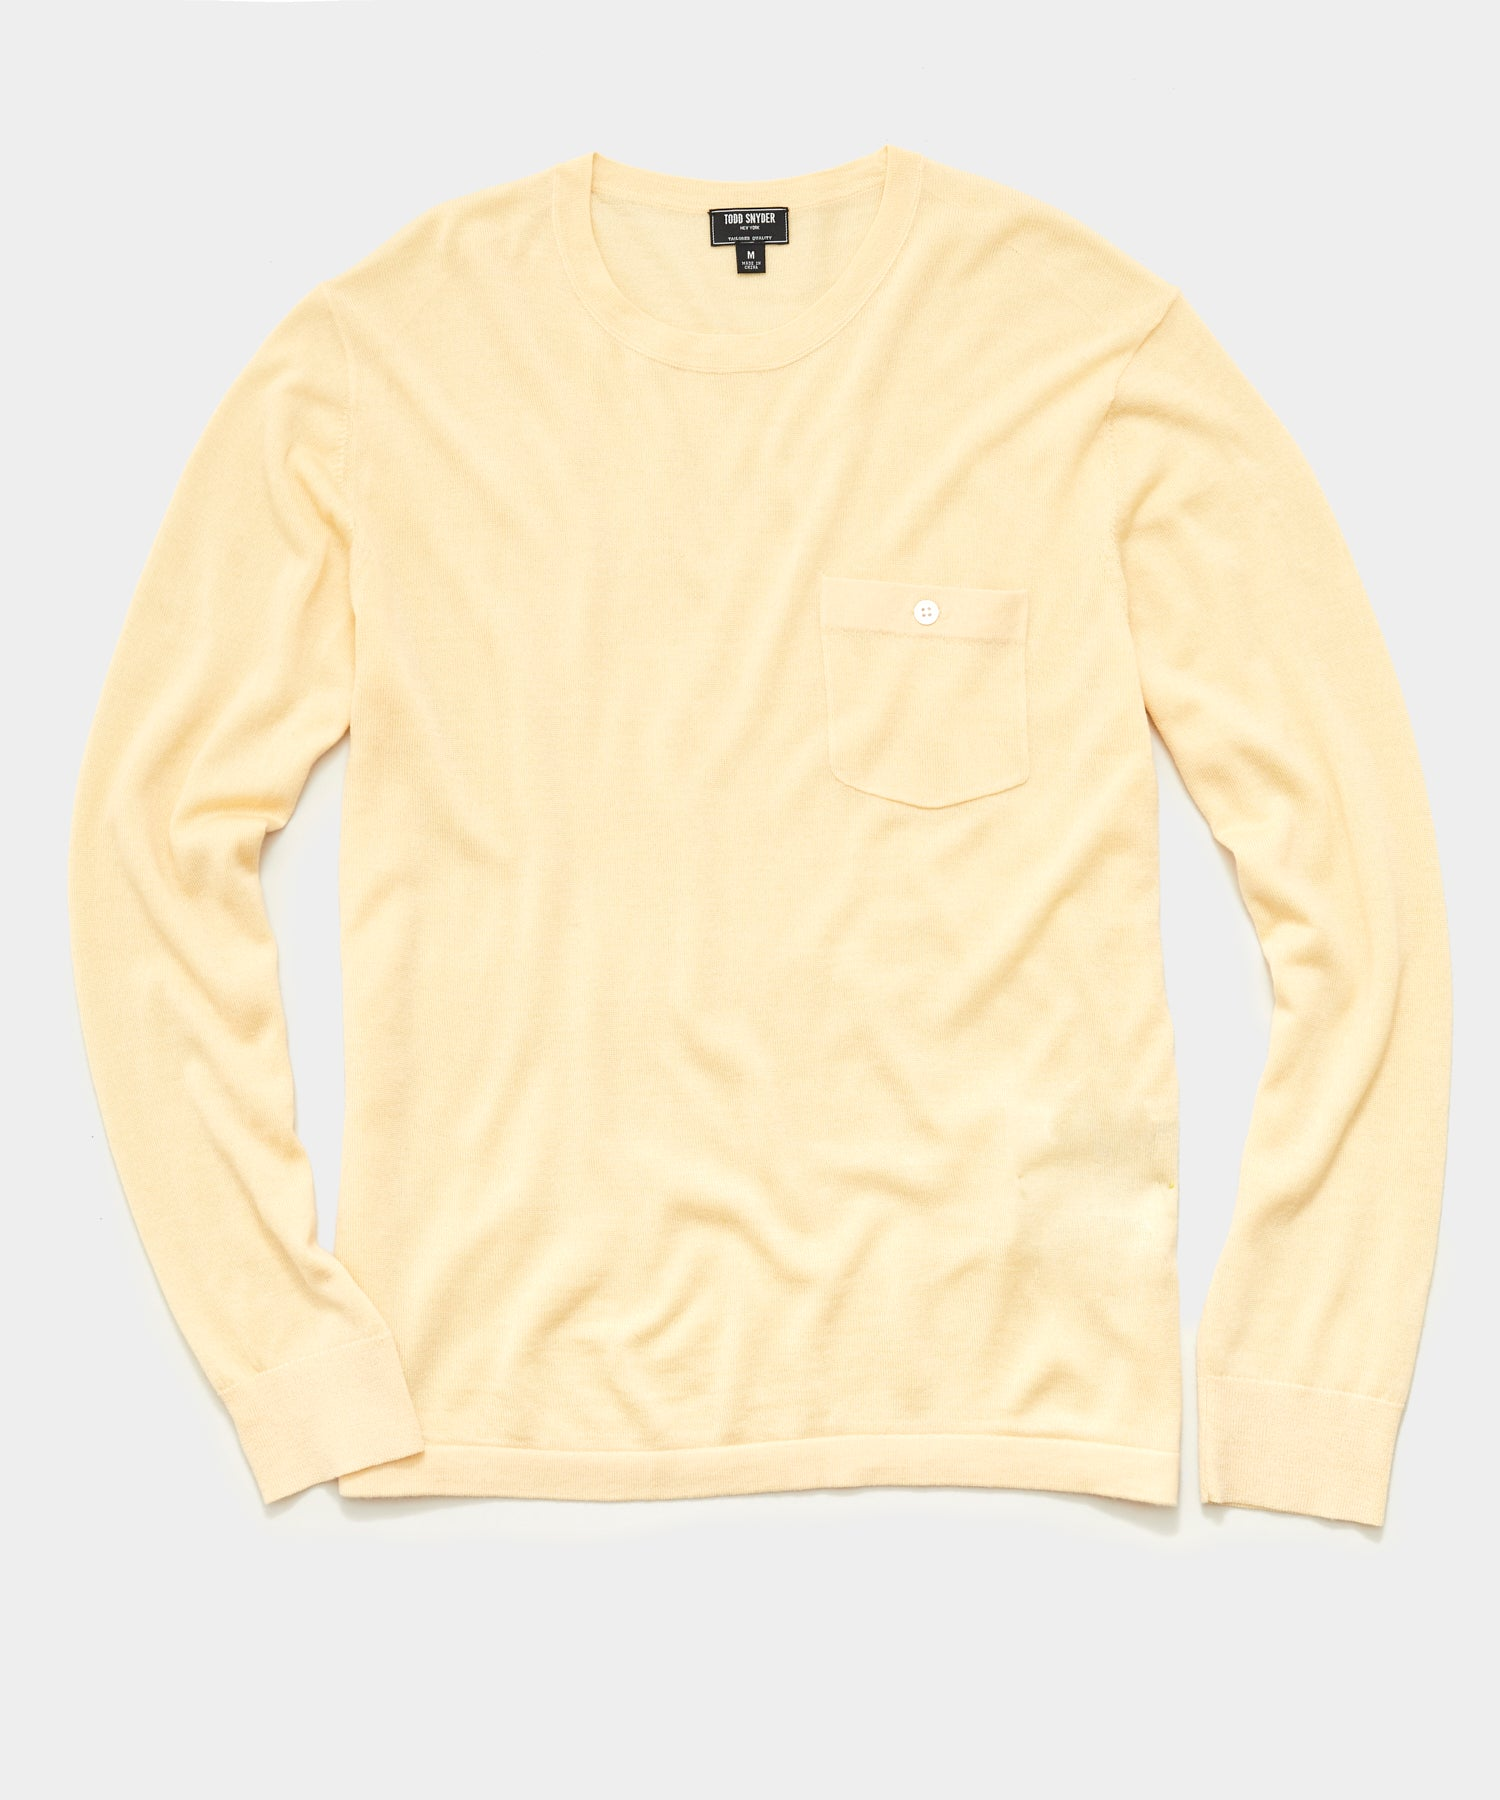 Premium Cashmere Pocket Tee in Pale Yellow